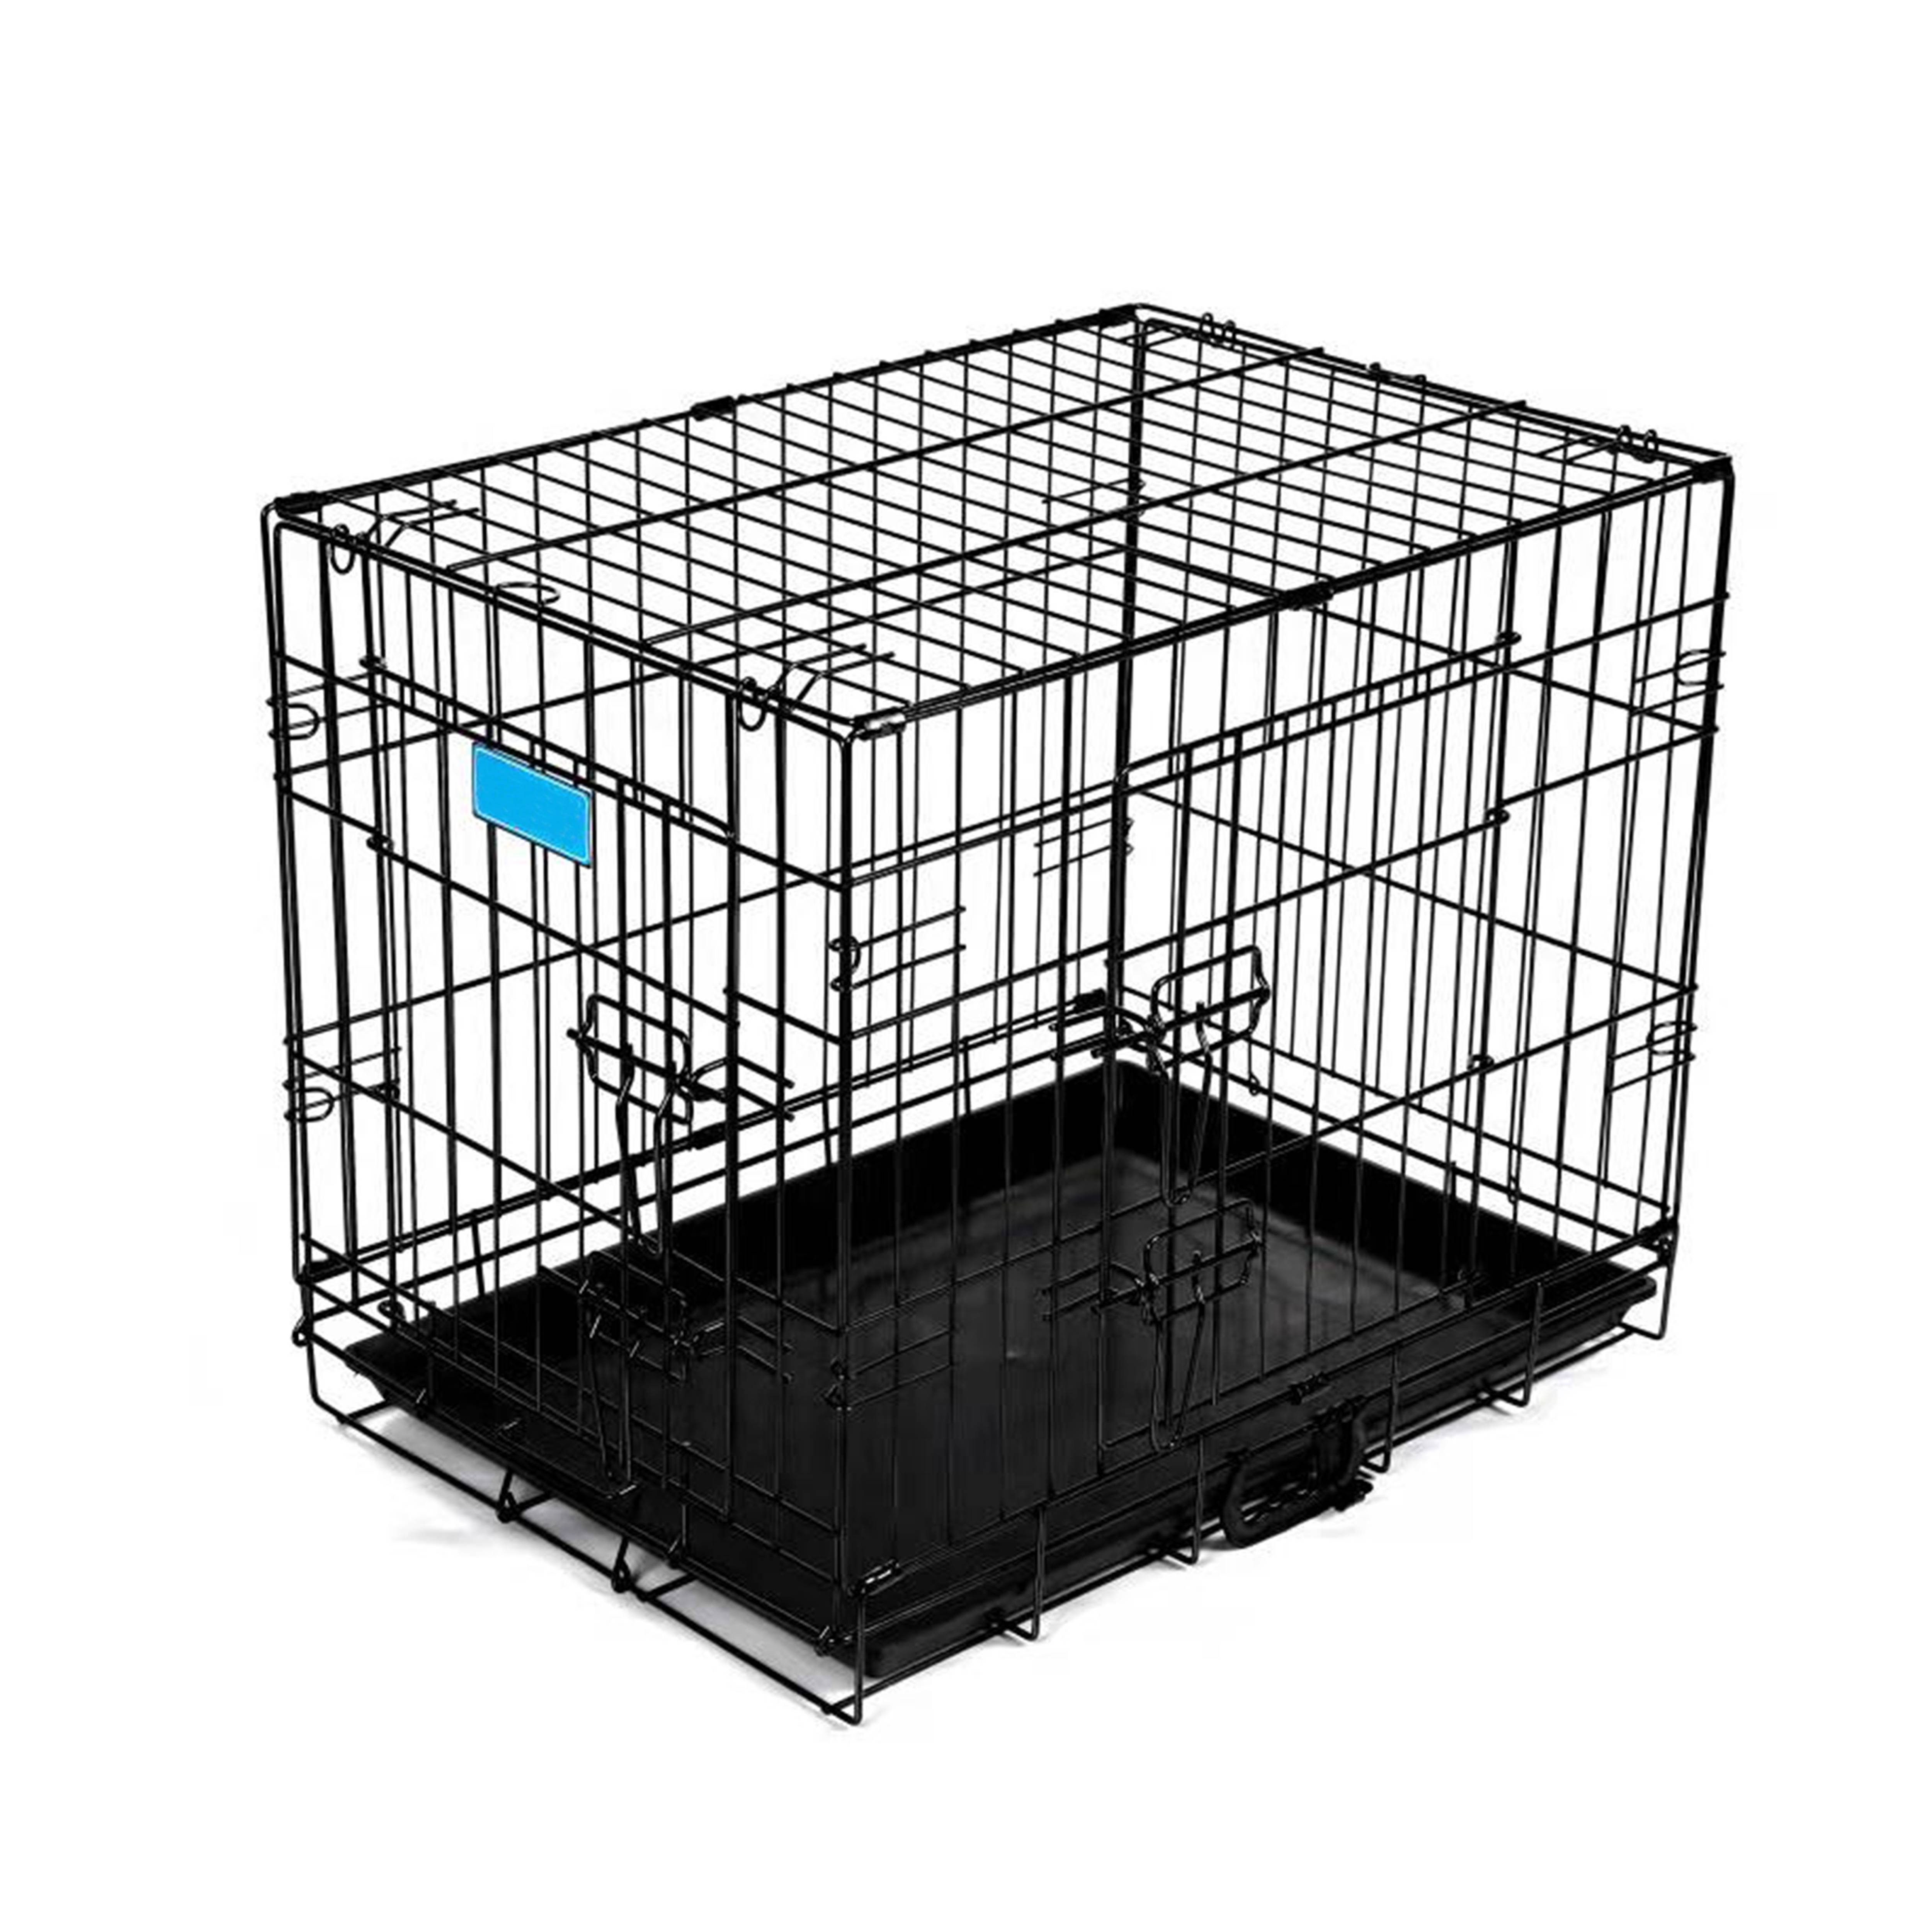 Black or blue or red iron large pet dog cages metal kennels for sale dogs Featured Image